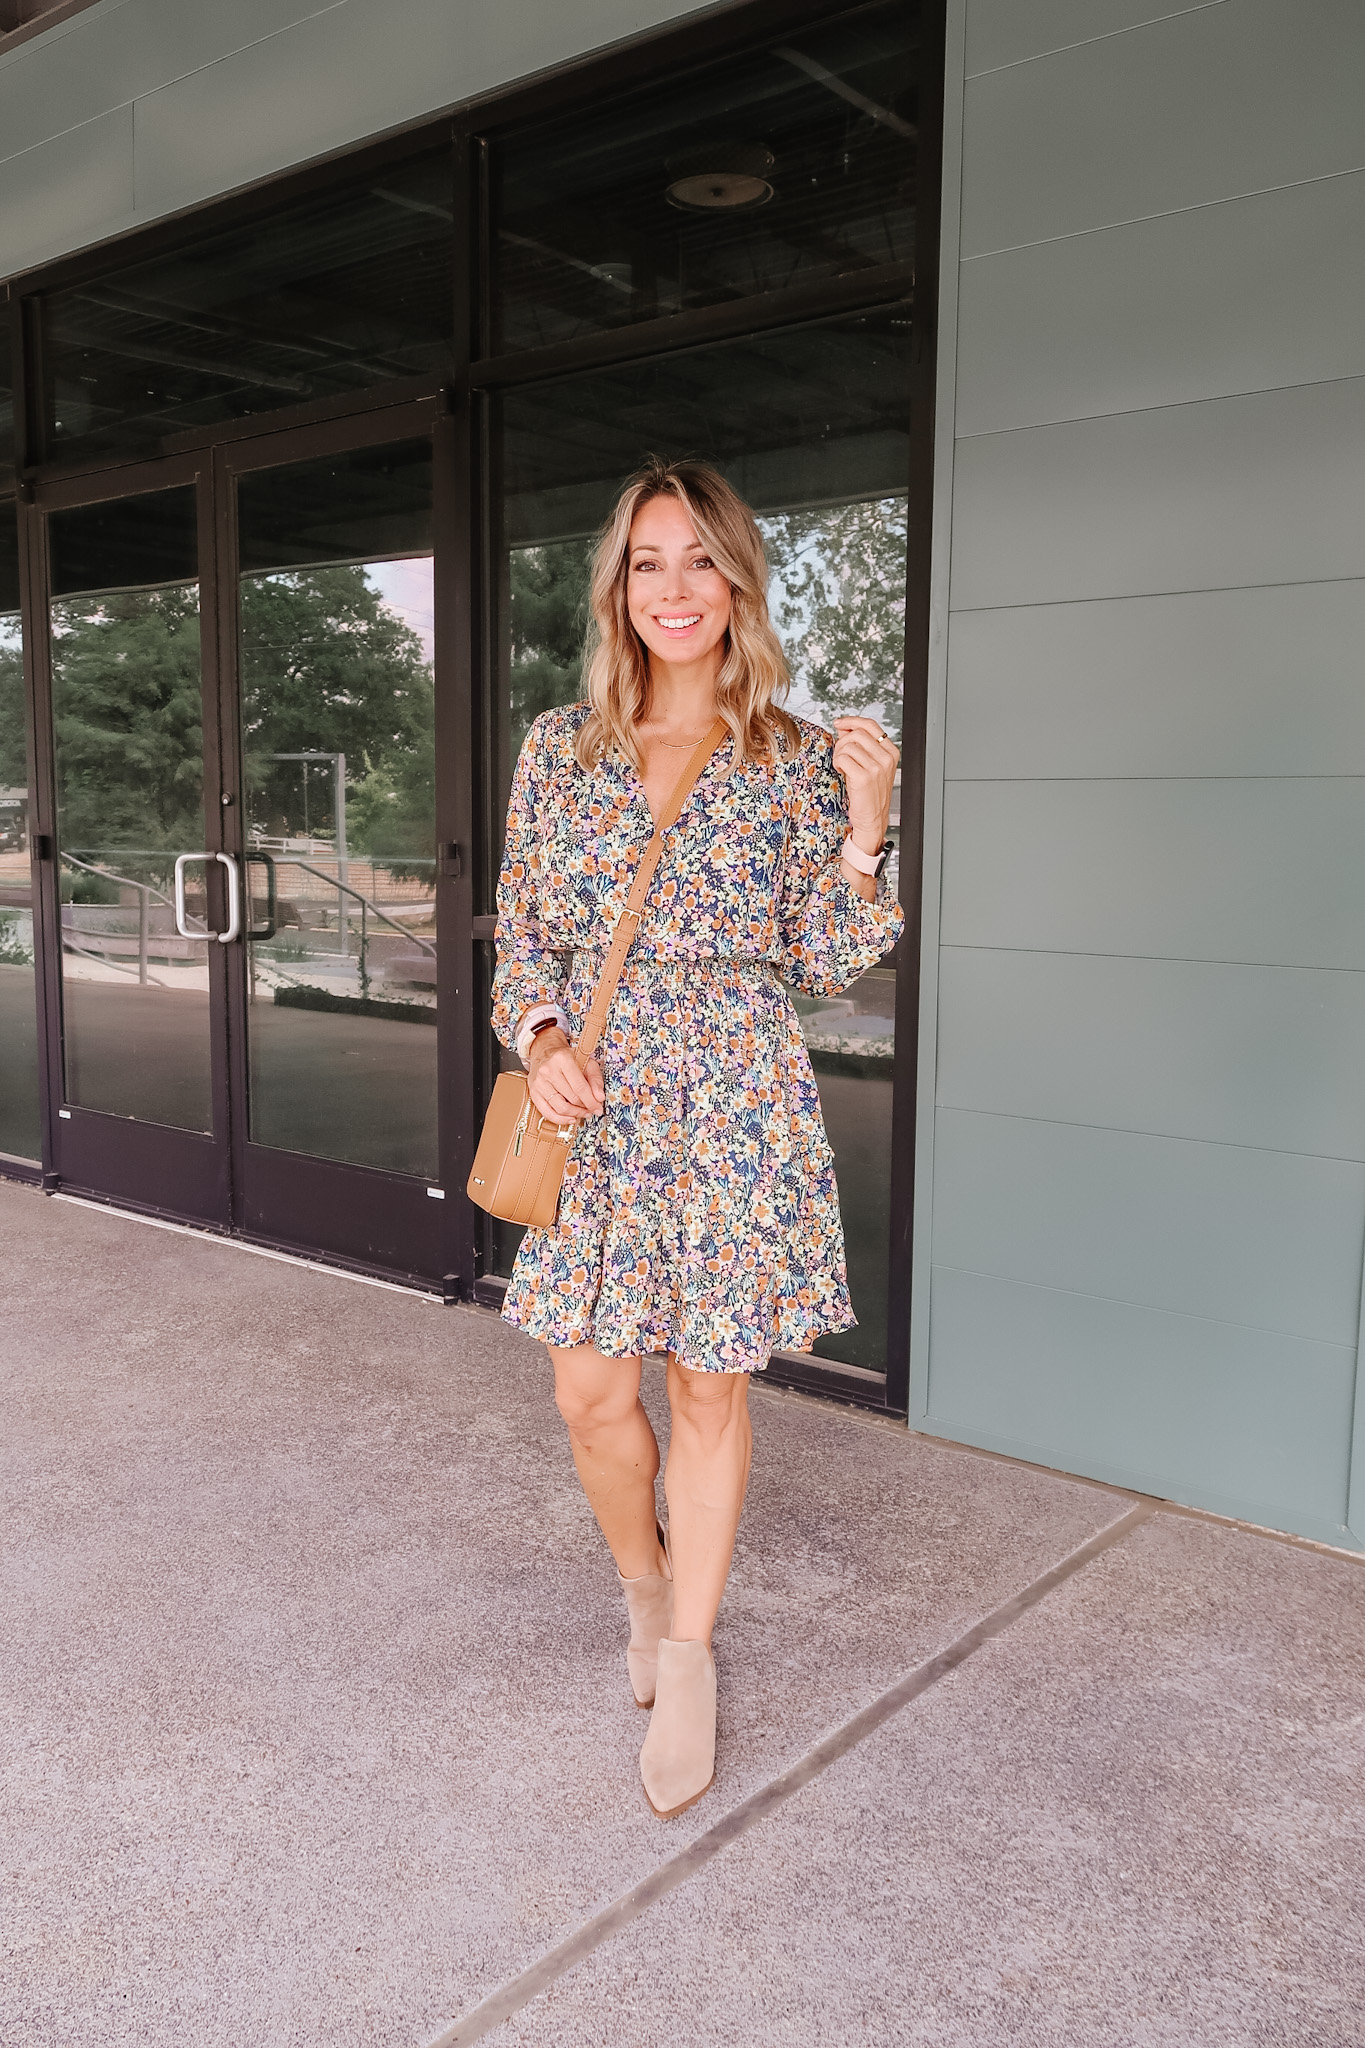 Outfits Lately, Floral Dress, Booties, Crossbody